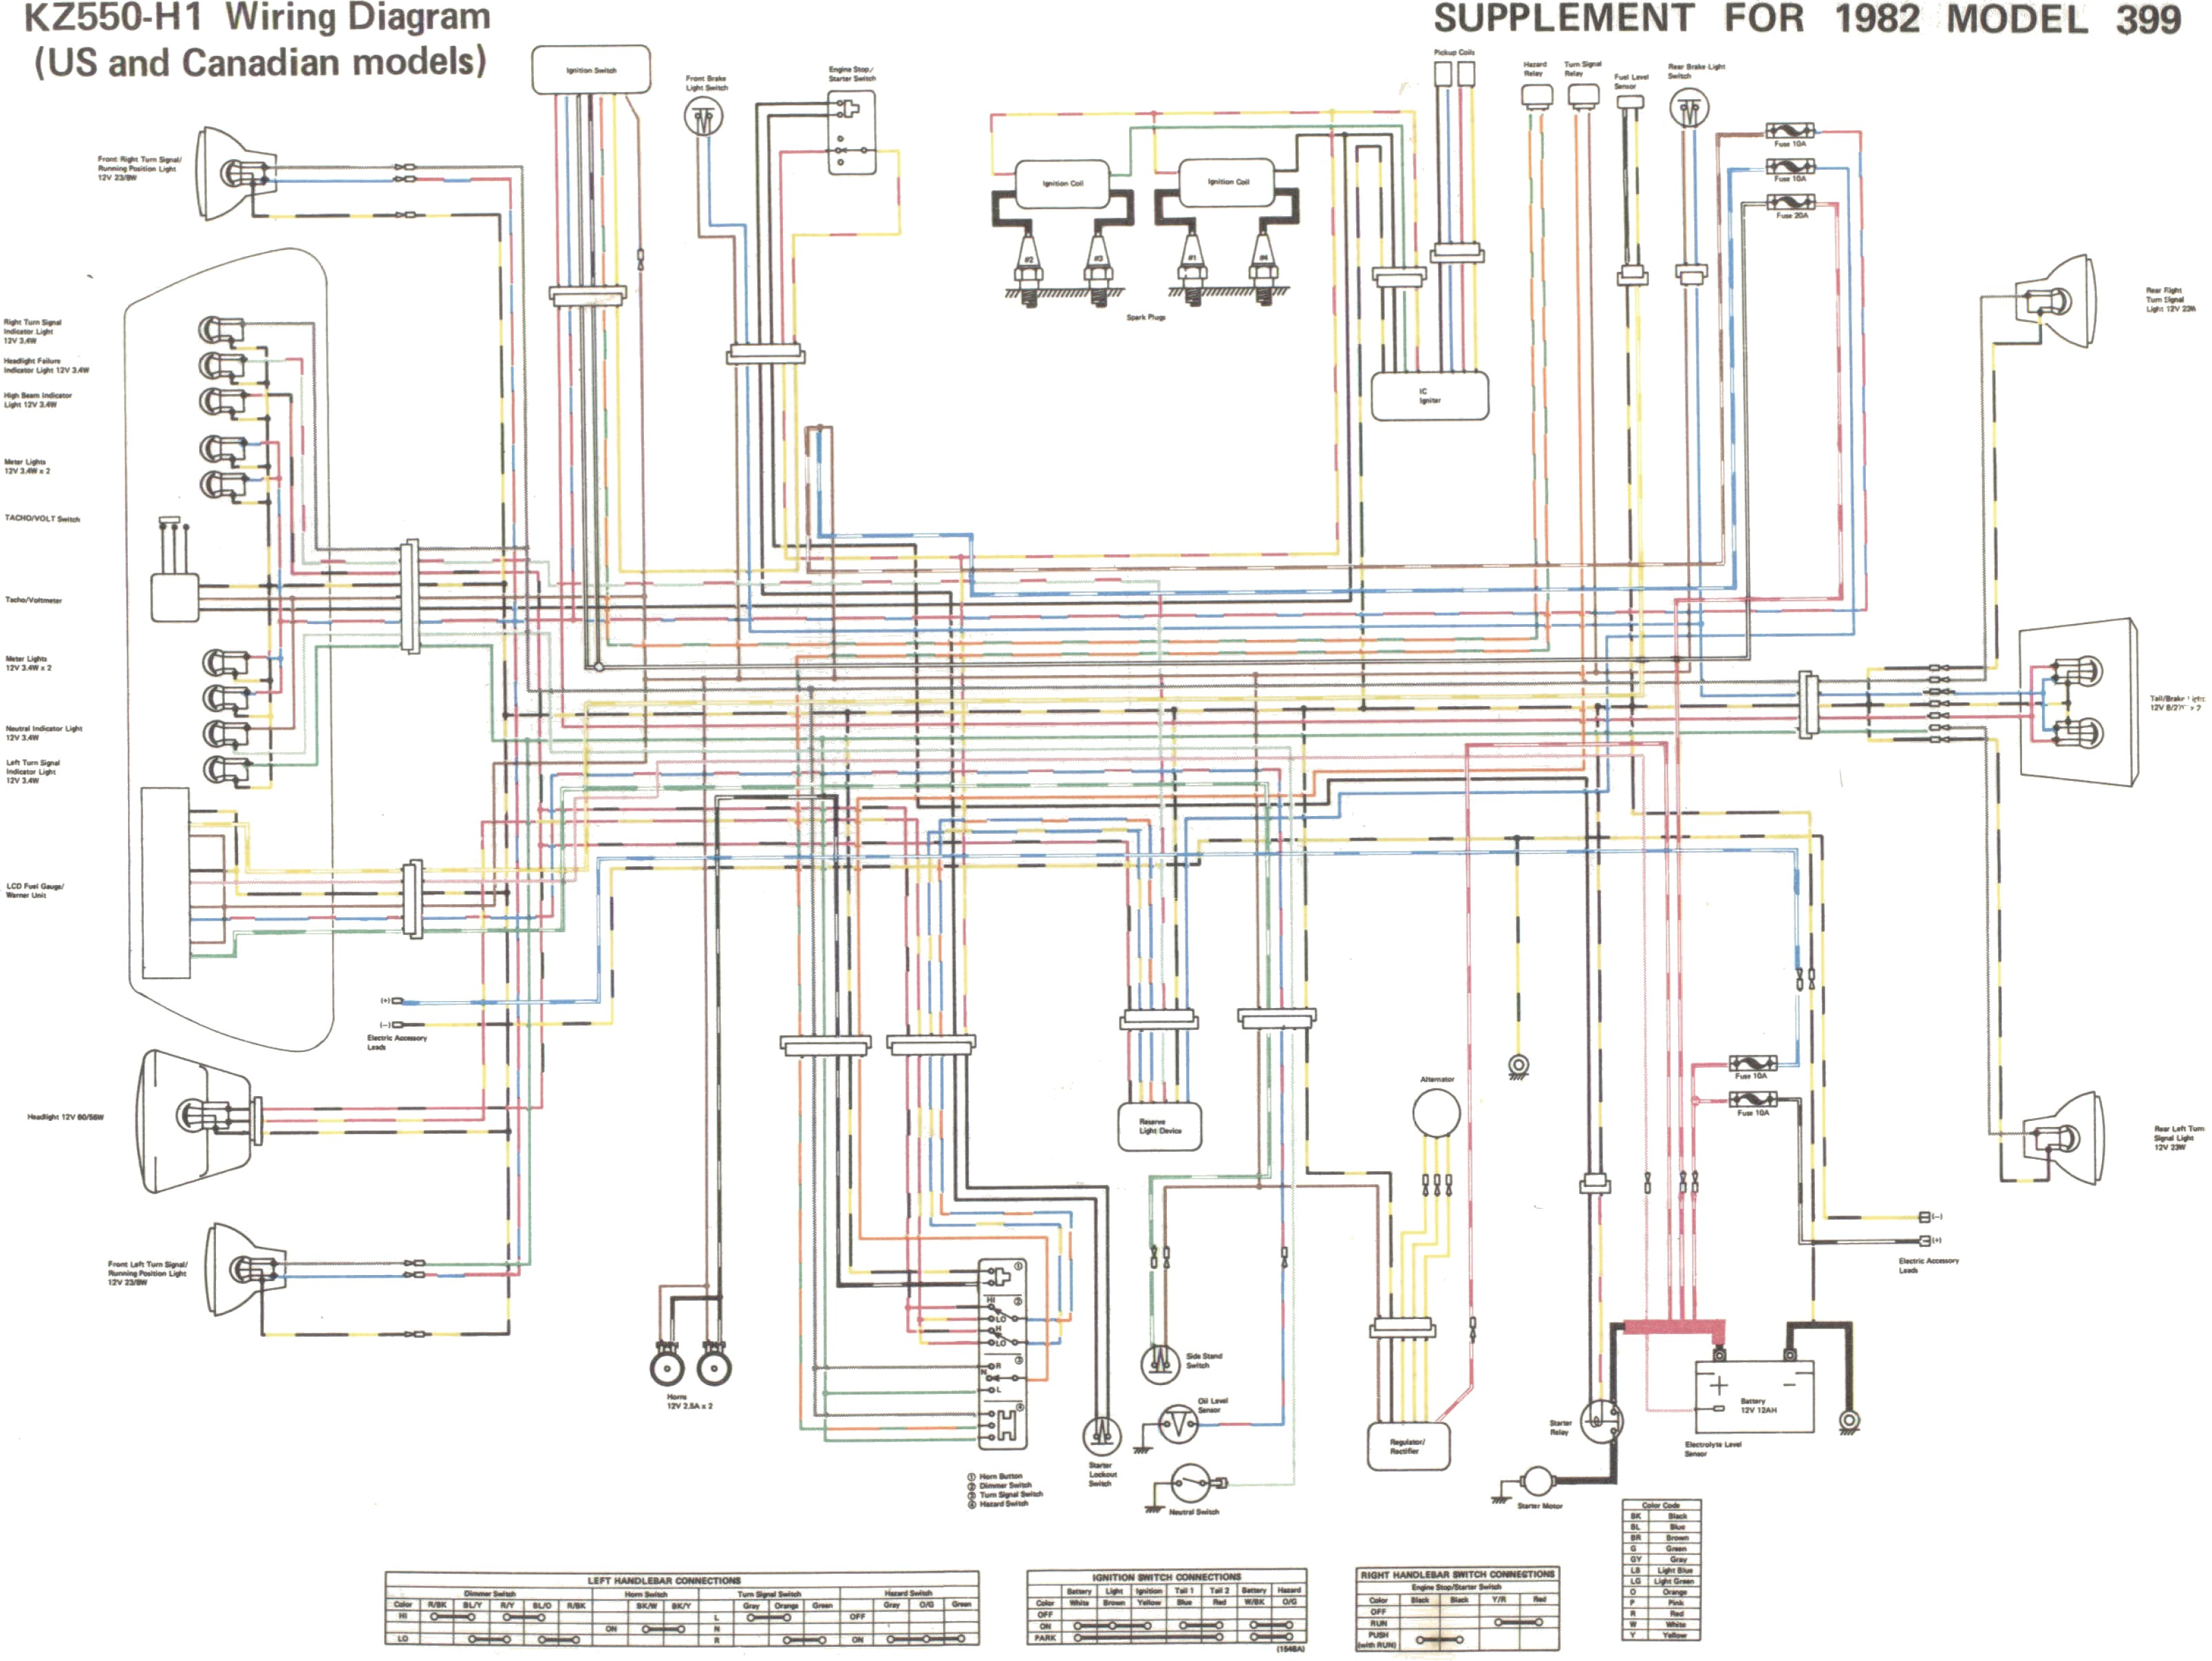 Kz1000 Routing Wiring Diagram Manual Of Kawasaki Z 550 Kz550